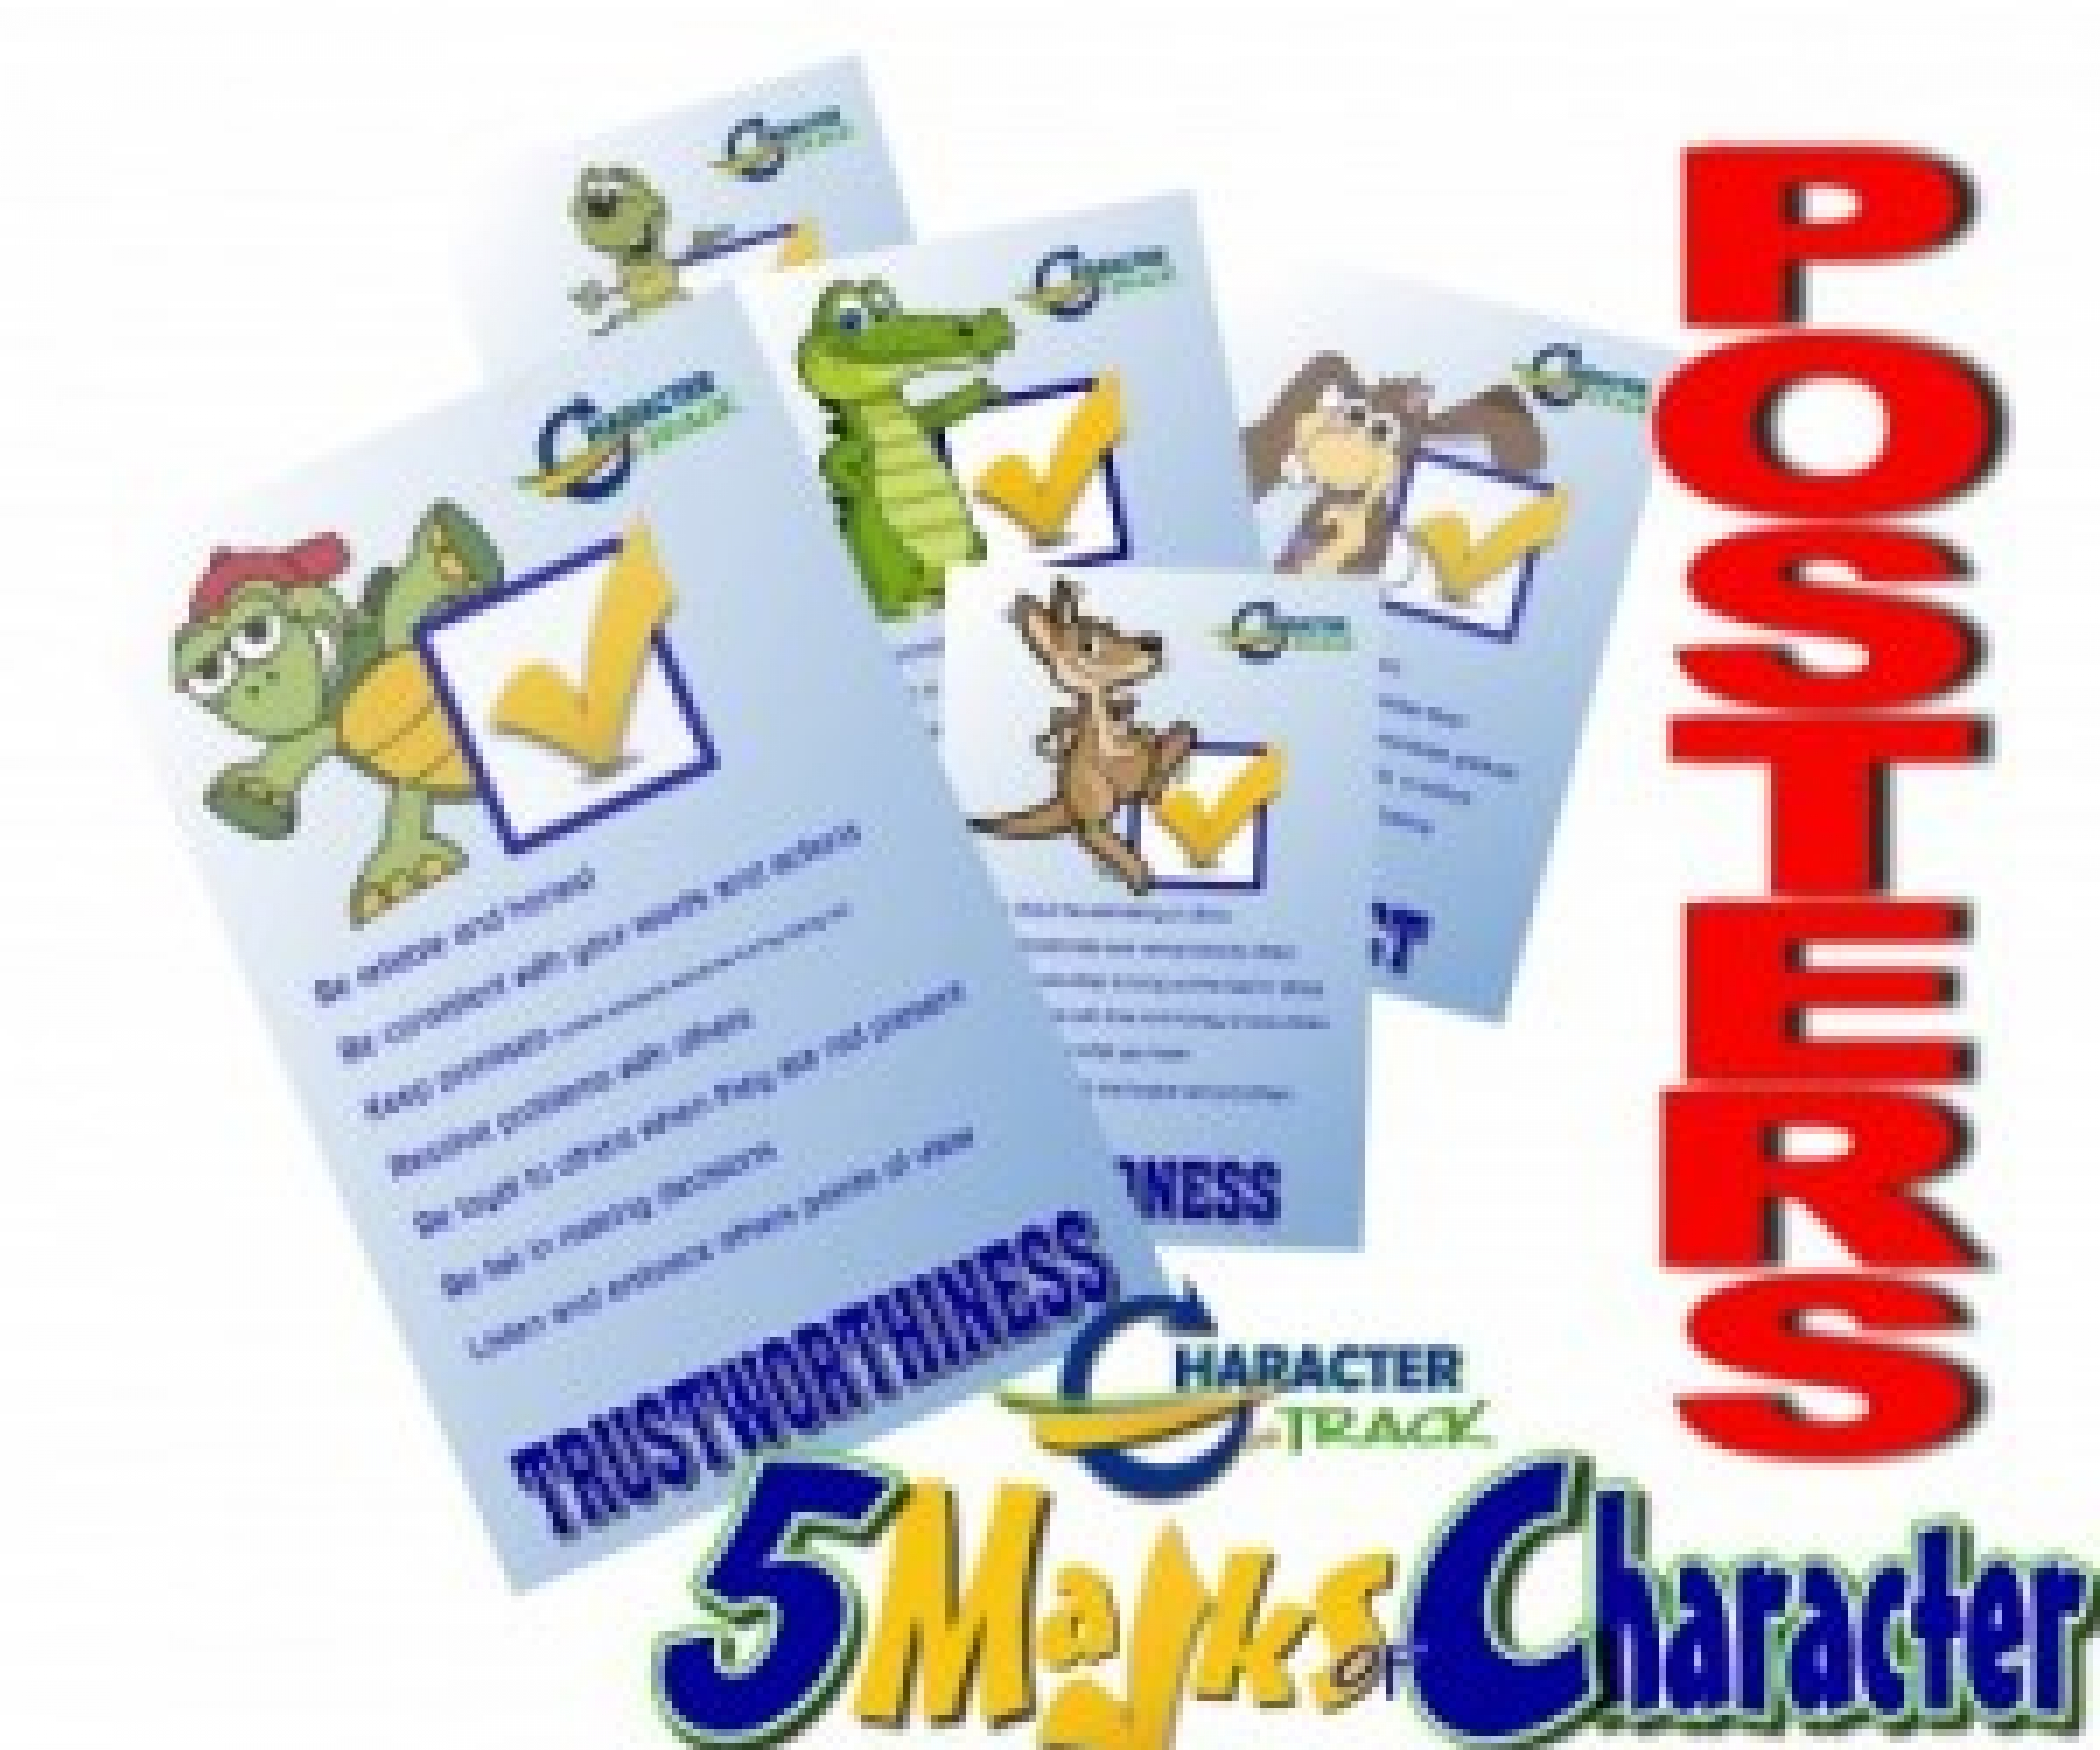 5 Marks of Character poster image